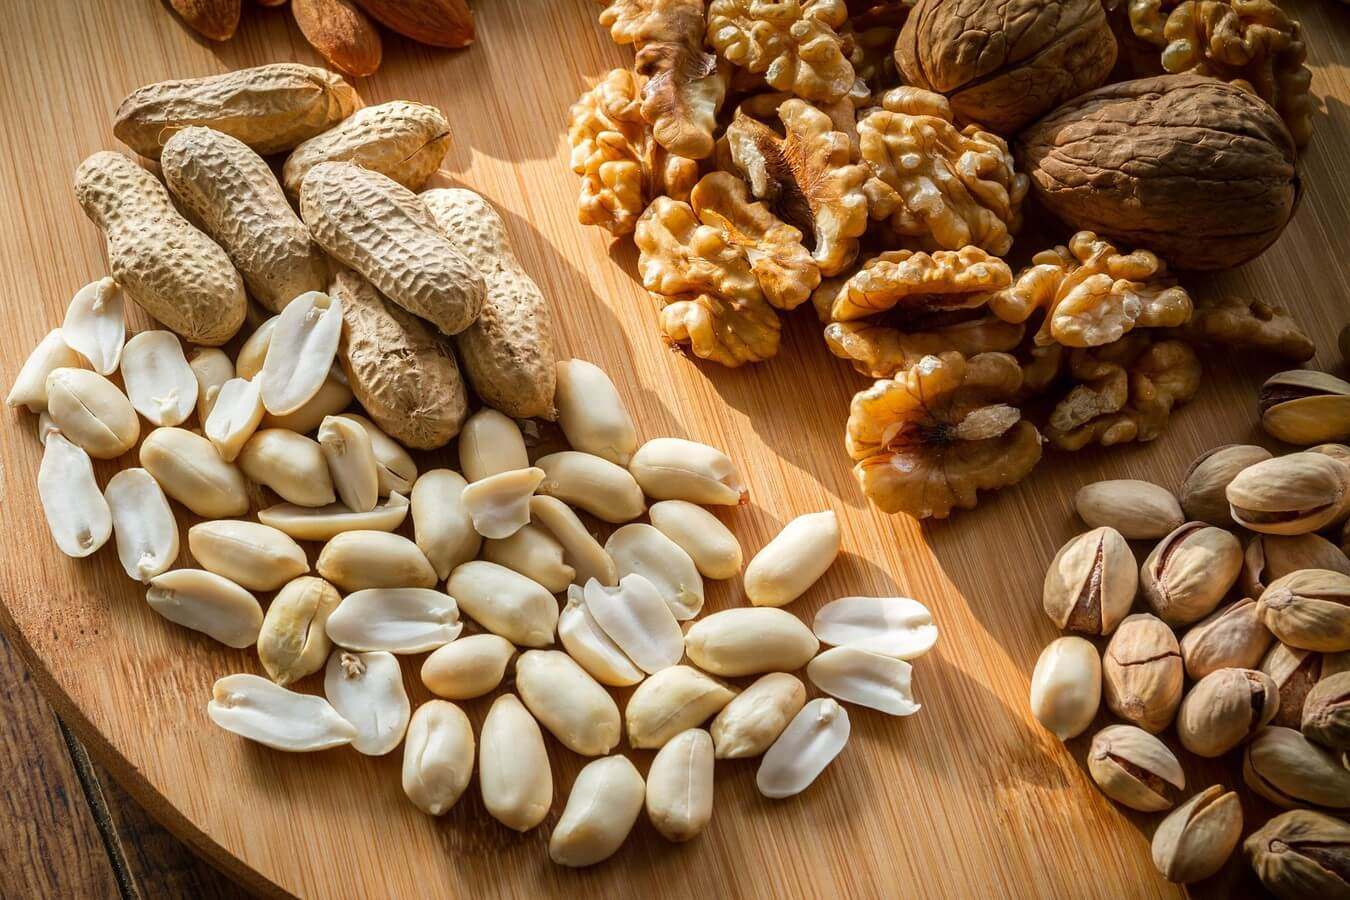 Send Gifts in Israel - Nuts and Dried Fruits Gifts